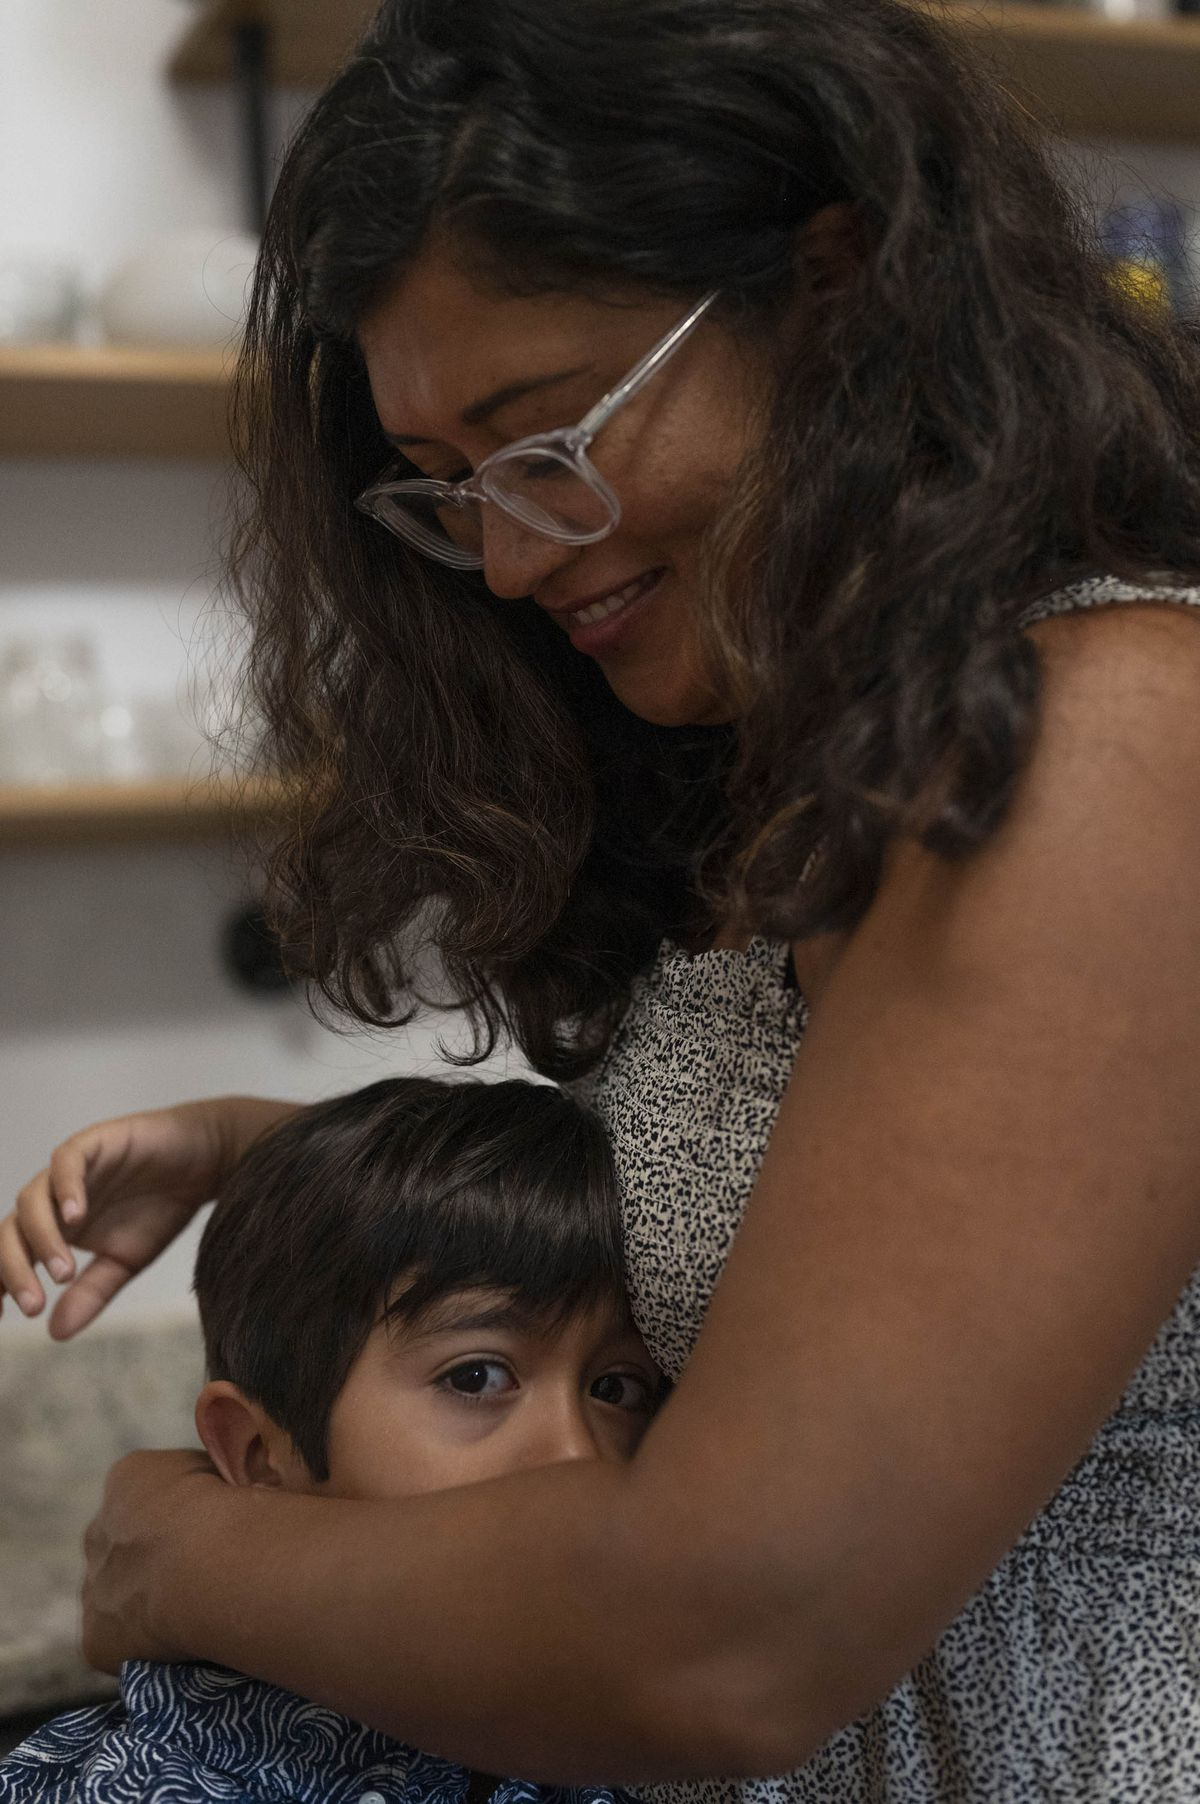 A mother wearing glasses embraces her kindergarten-aged son as he looks at the viewer.